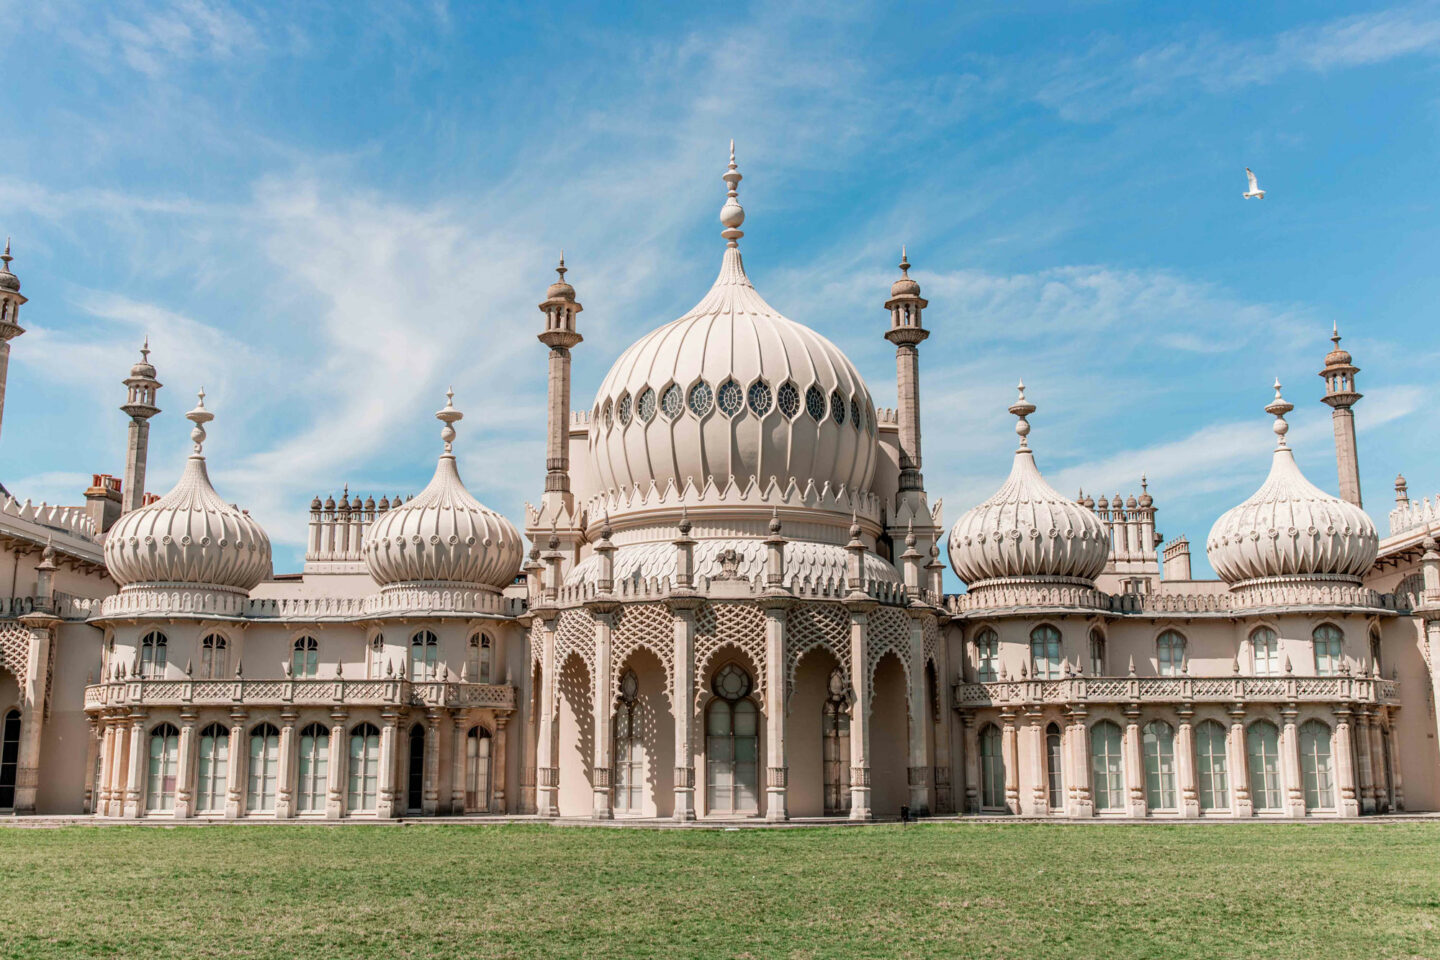 things-to-do-in-brighton-Bucket-list--Instagram-Story-Template--kelseyinlondon-Kelsey-Heinrichs-Royal_Pavilion.jpg